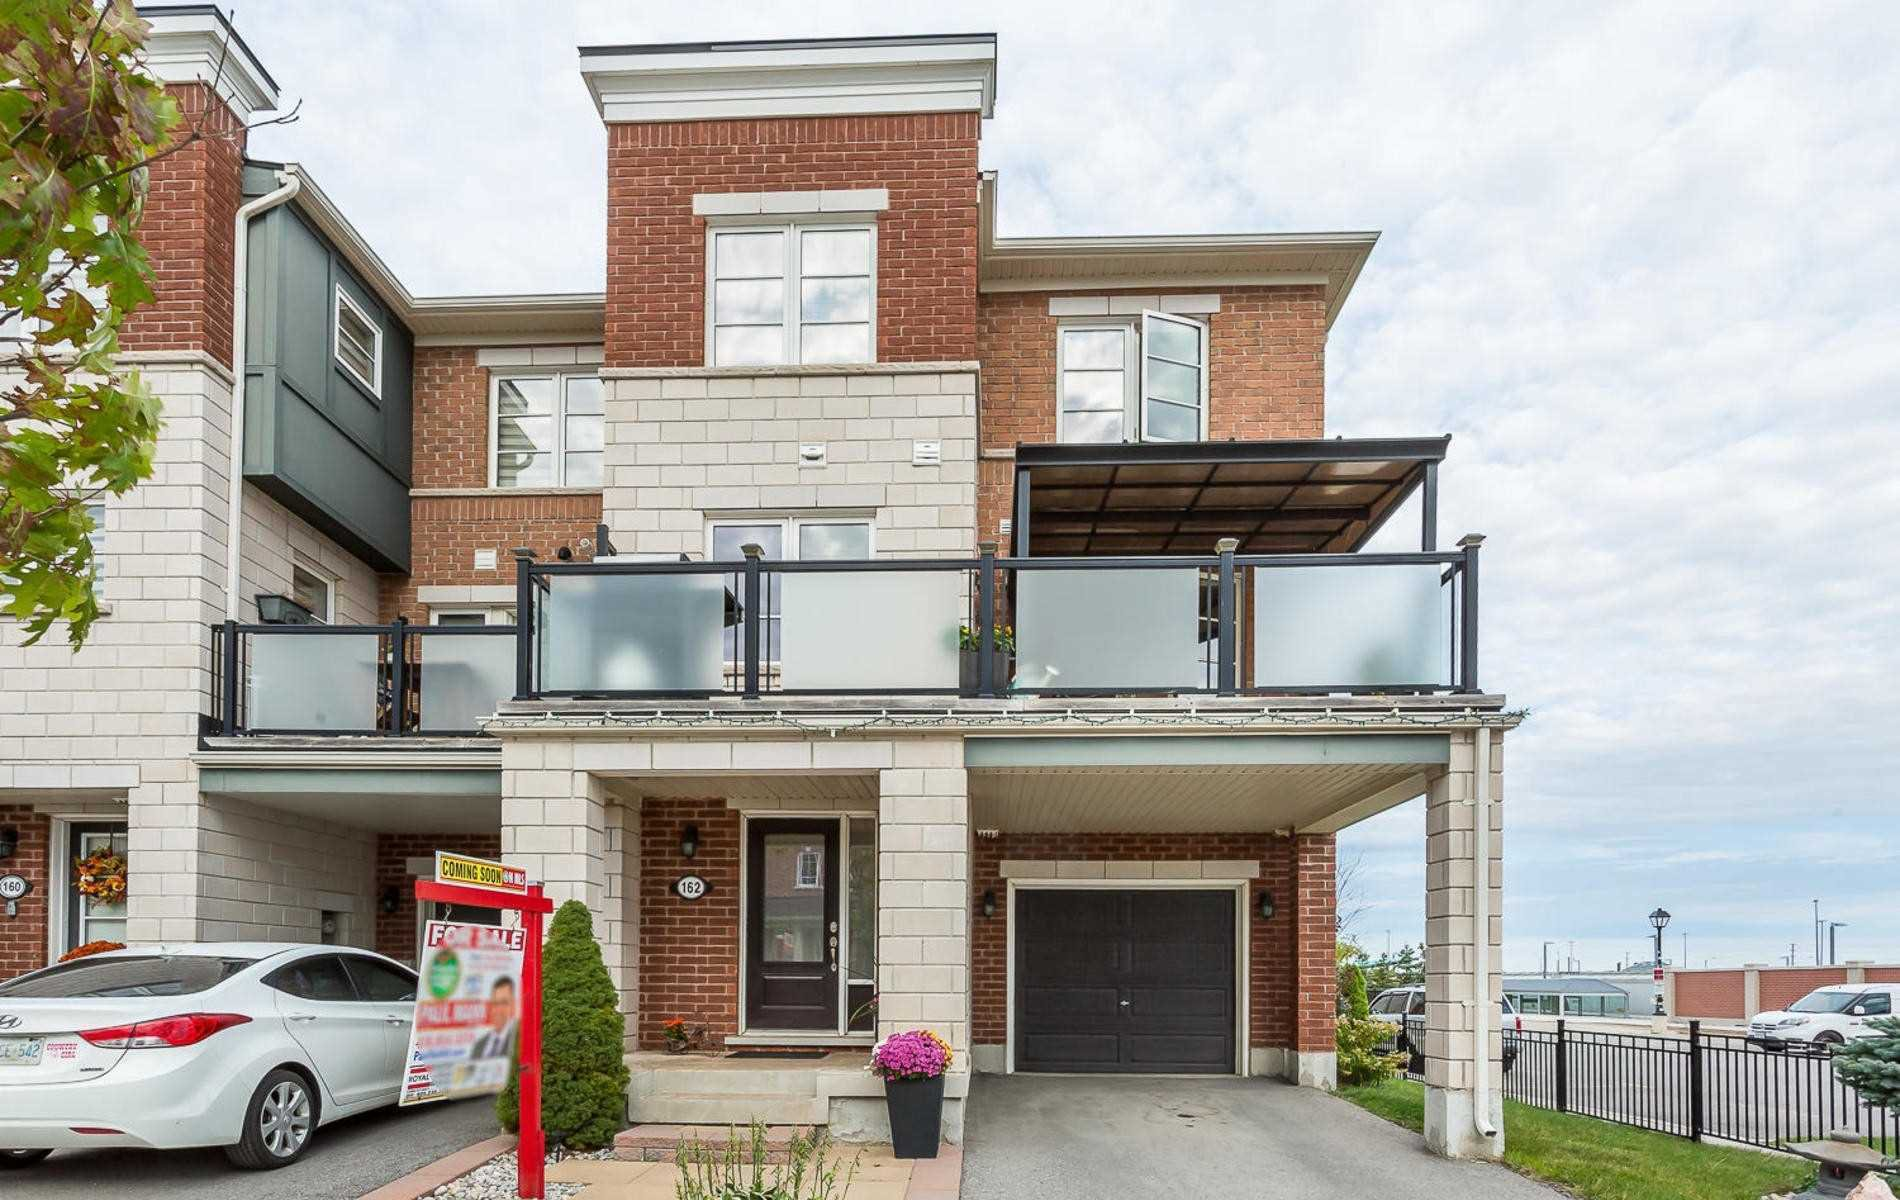 Main Photo: 162 Baycliffe Crescent in Brampton: Northwest Brampton House (3-Storey) for sale : MLS®# W4593287